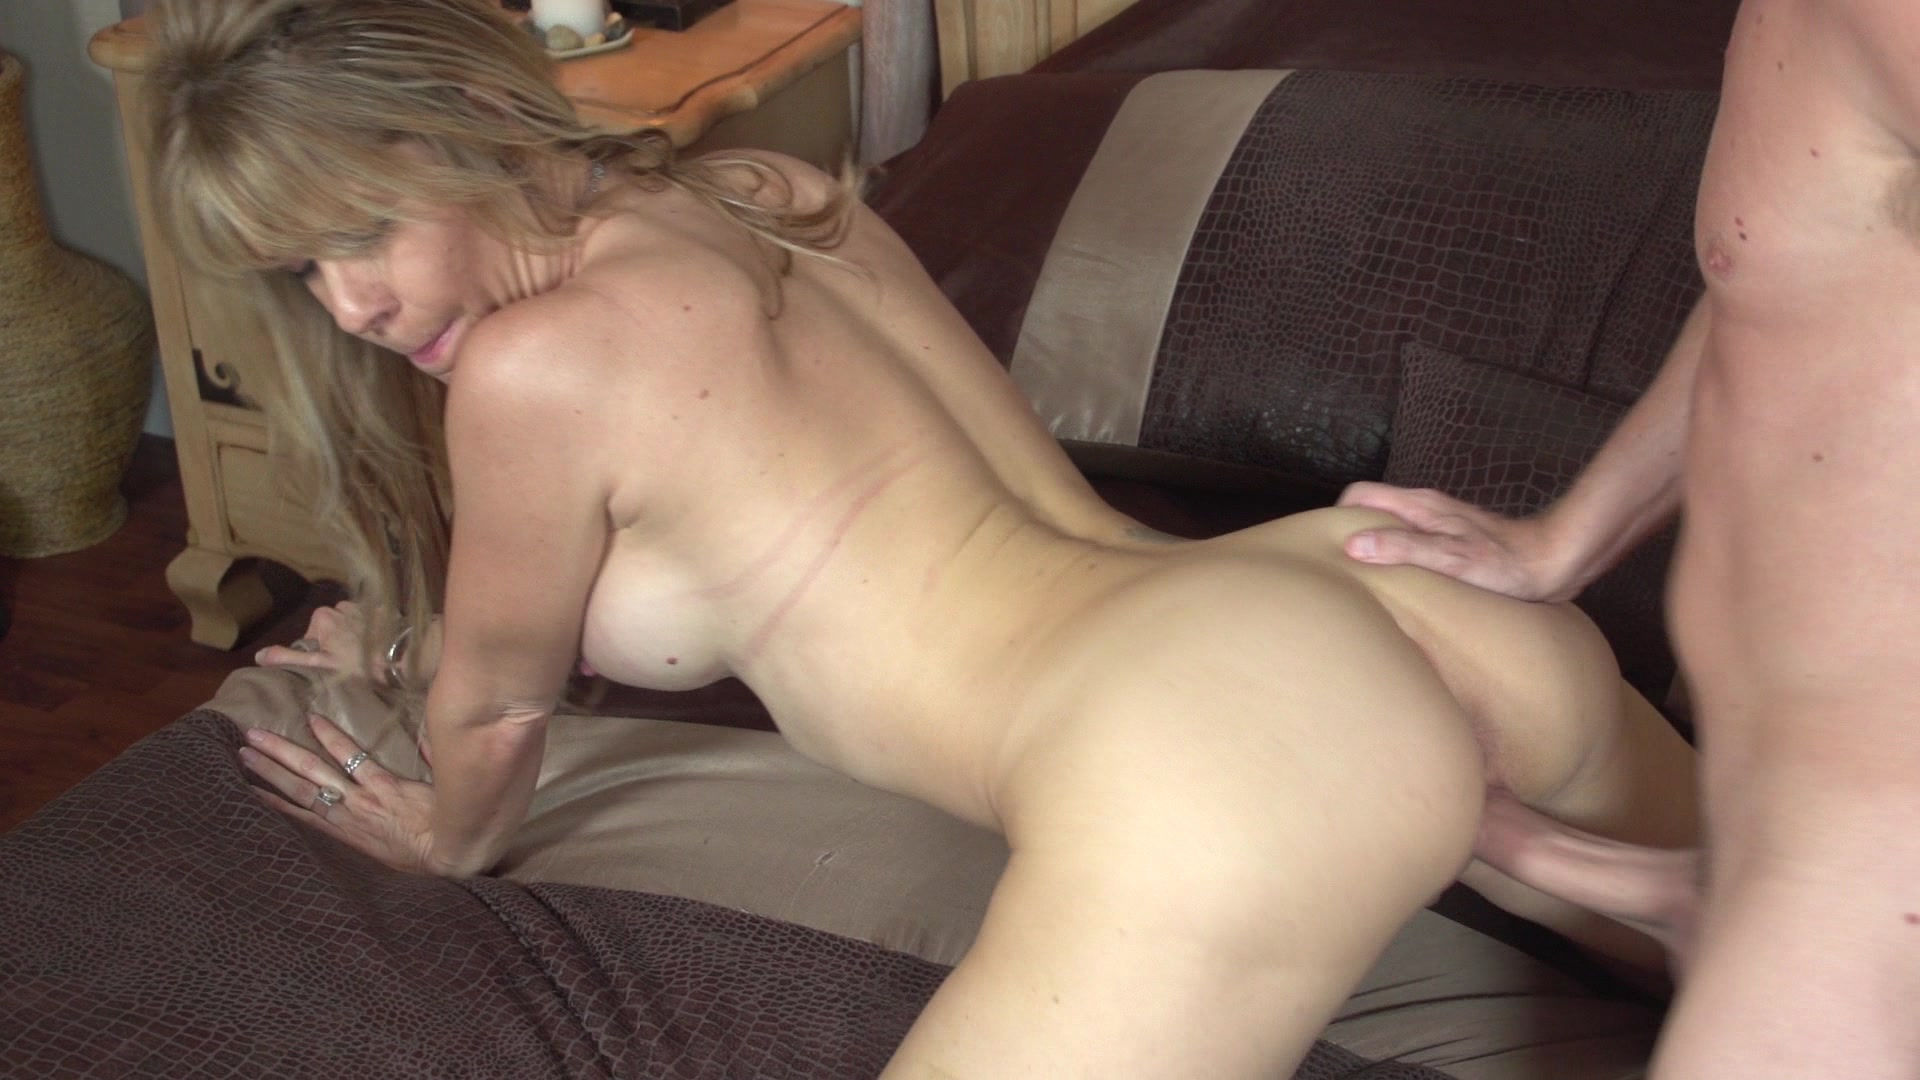 neighborhood moms down to fuck 2016 videos on demand adult dvd